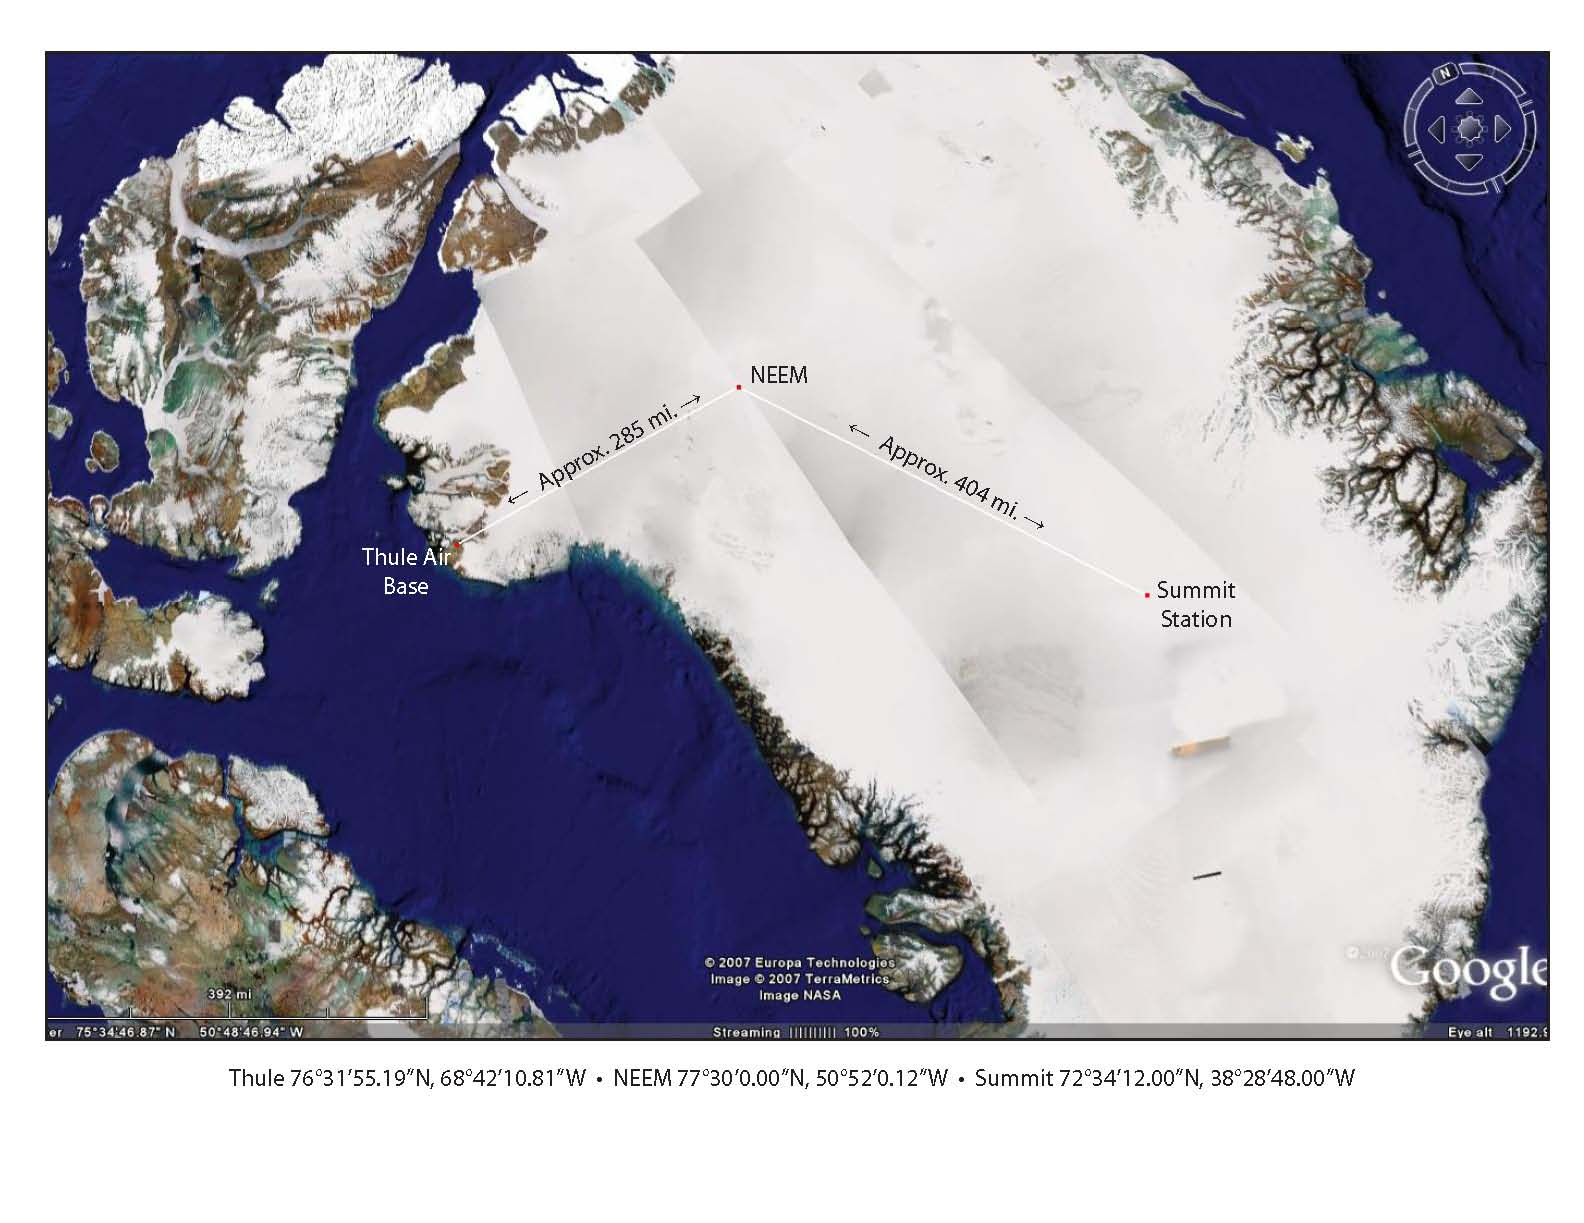 The 2008 ice route from Thule Air Base to Summit Station, with a fuel-delivery stop at NEEM, the international, deep ice-core drilling camp.